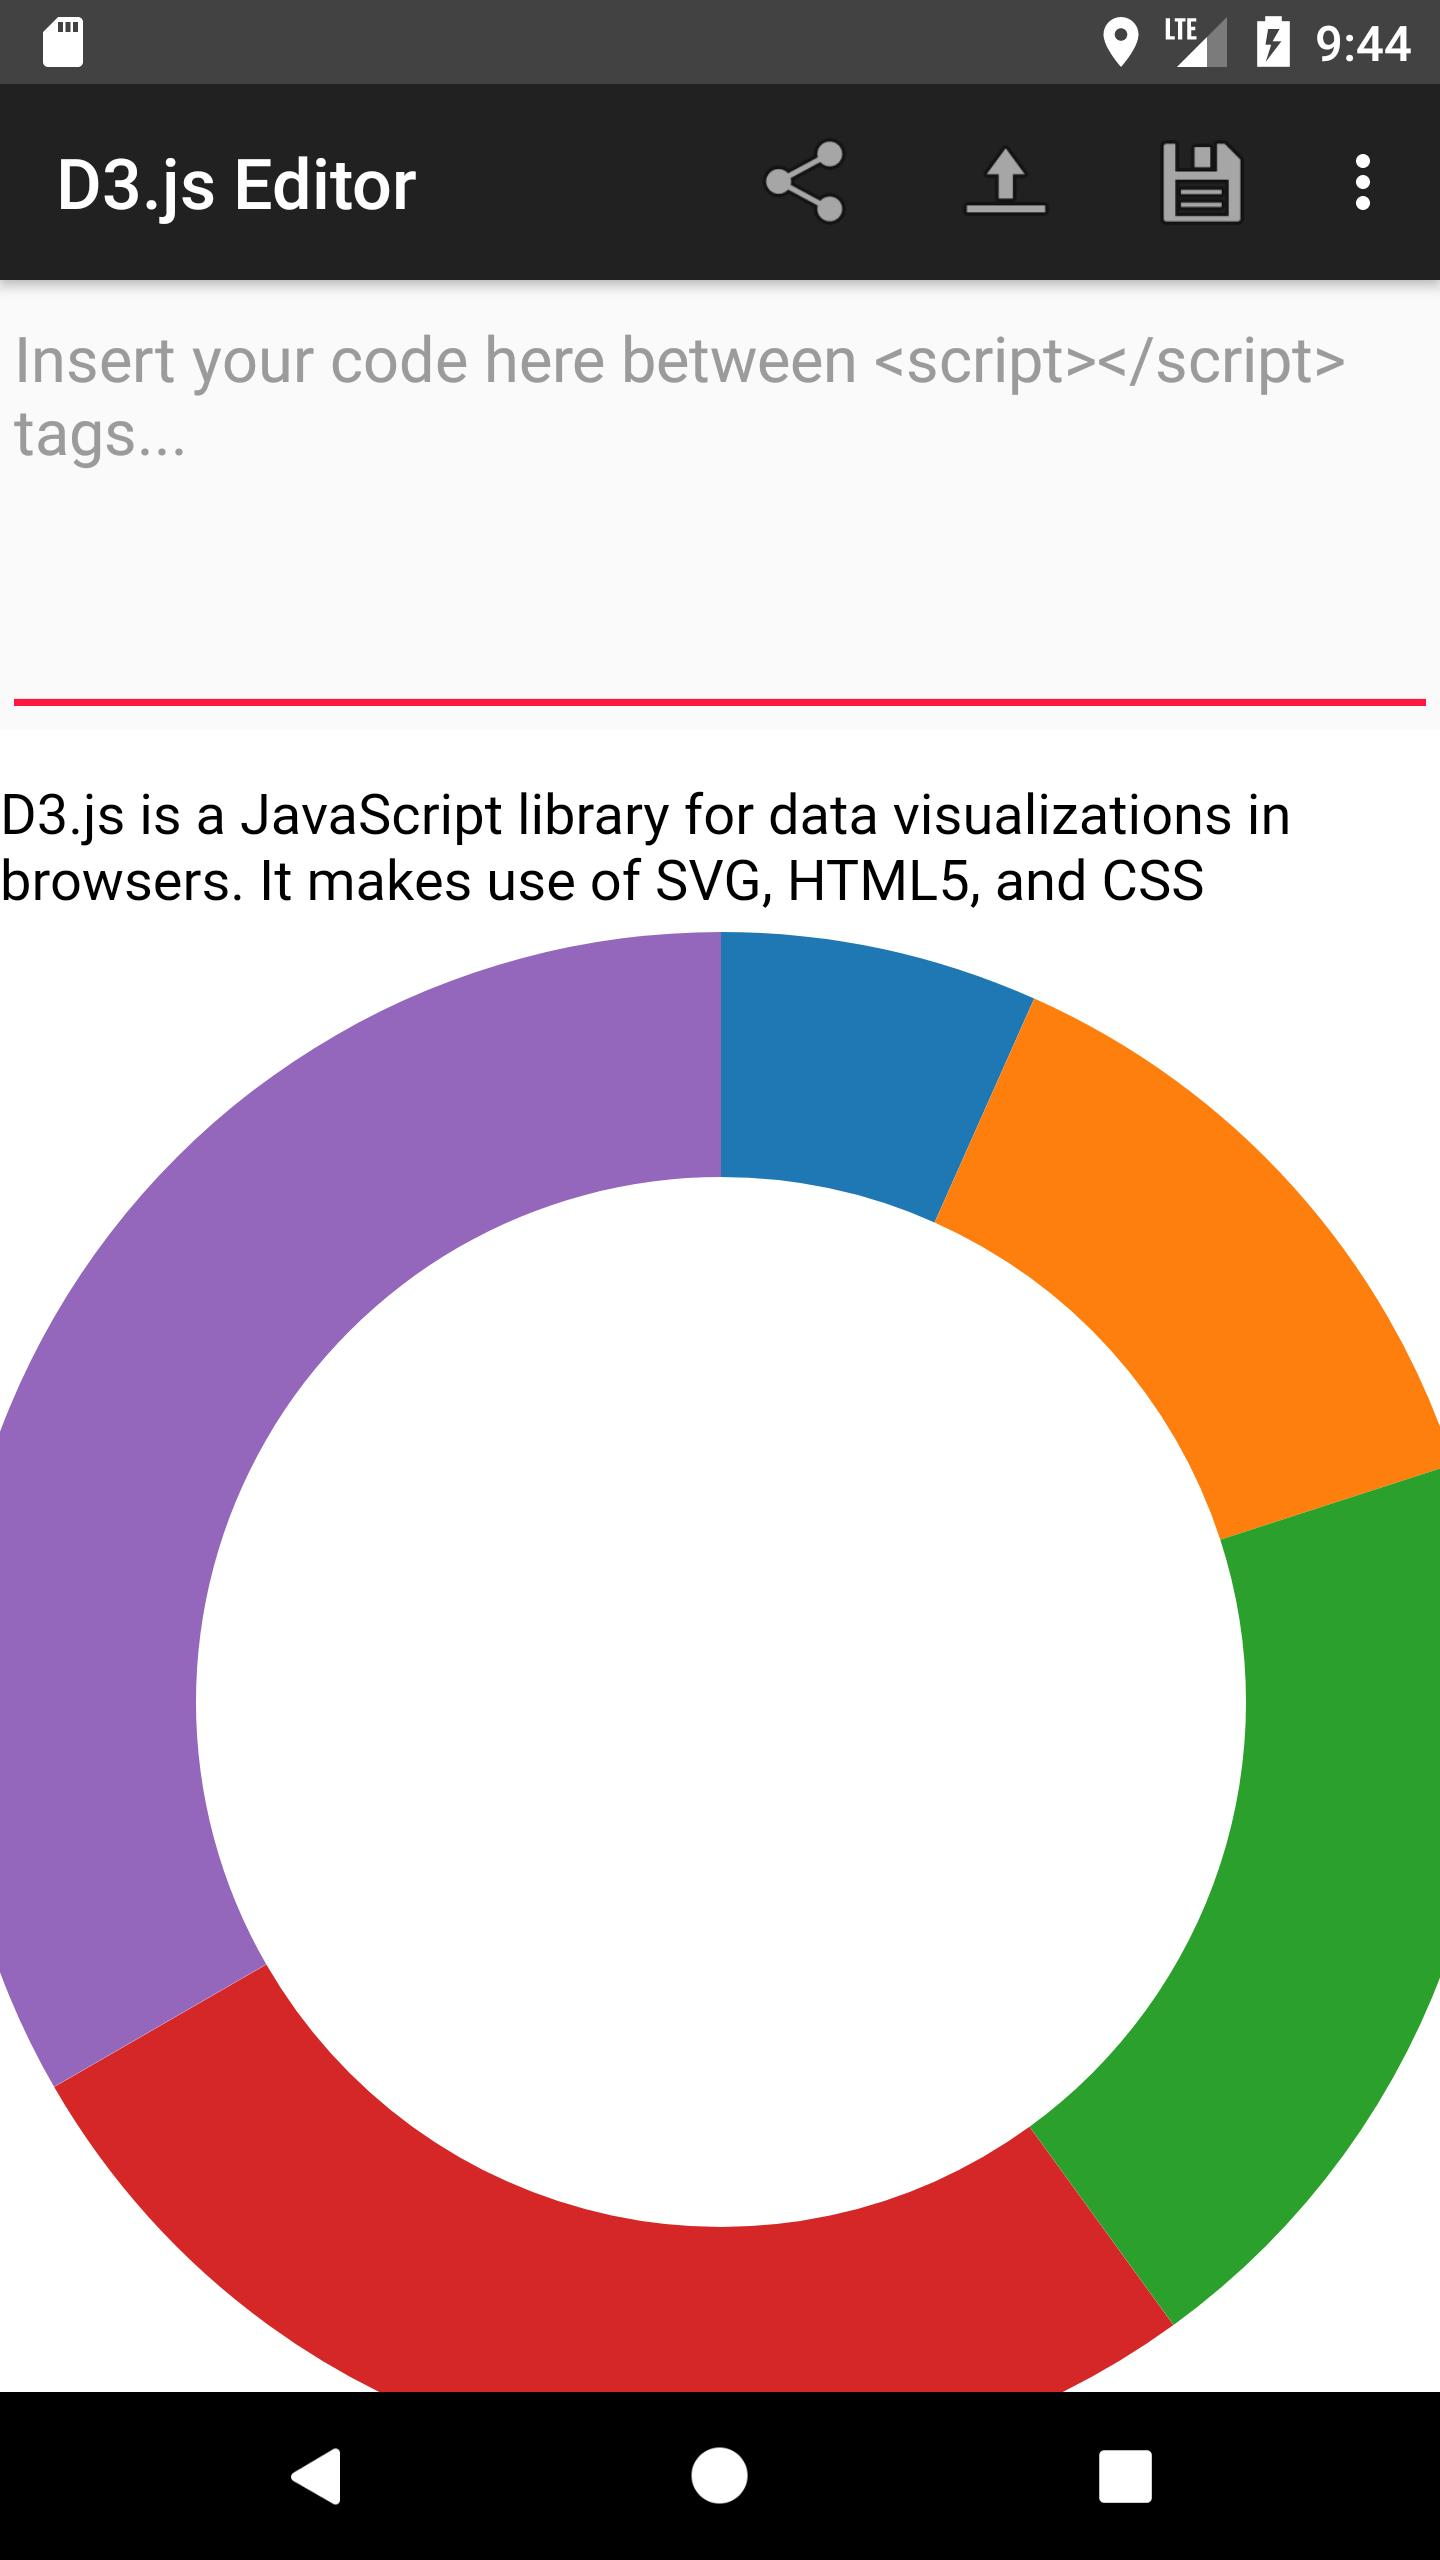 D3 js Editor for Android - APK Download